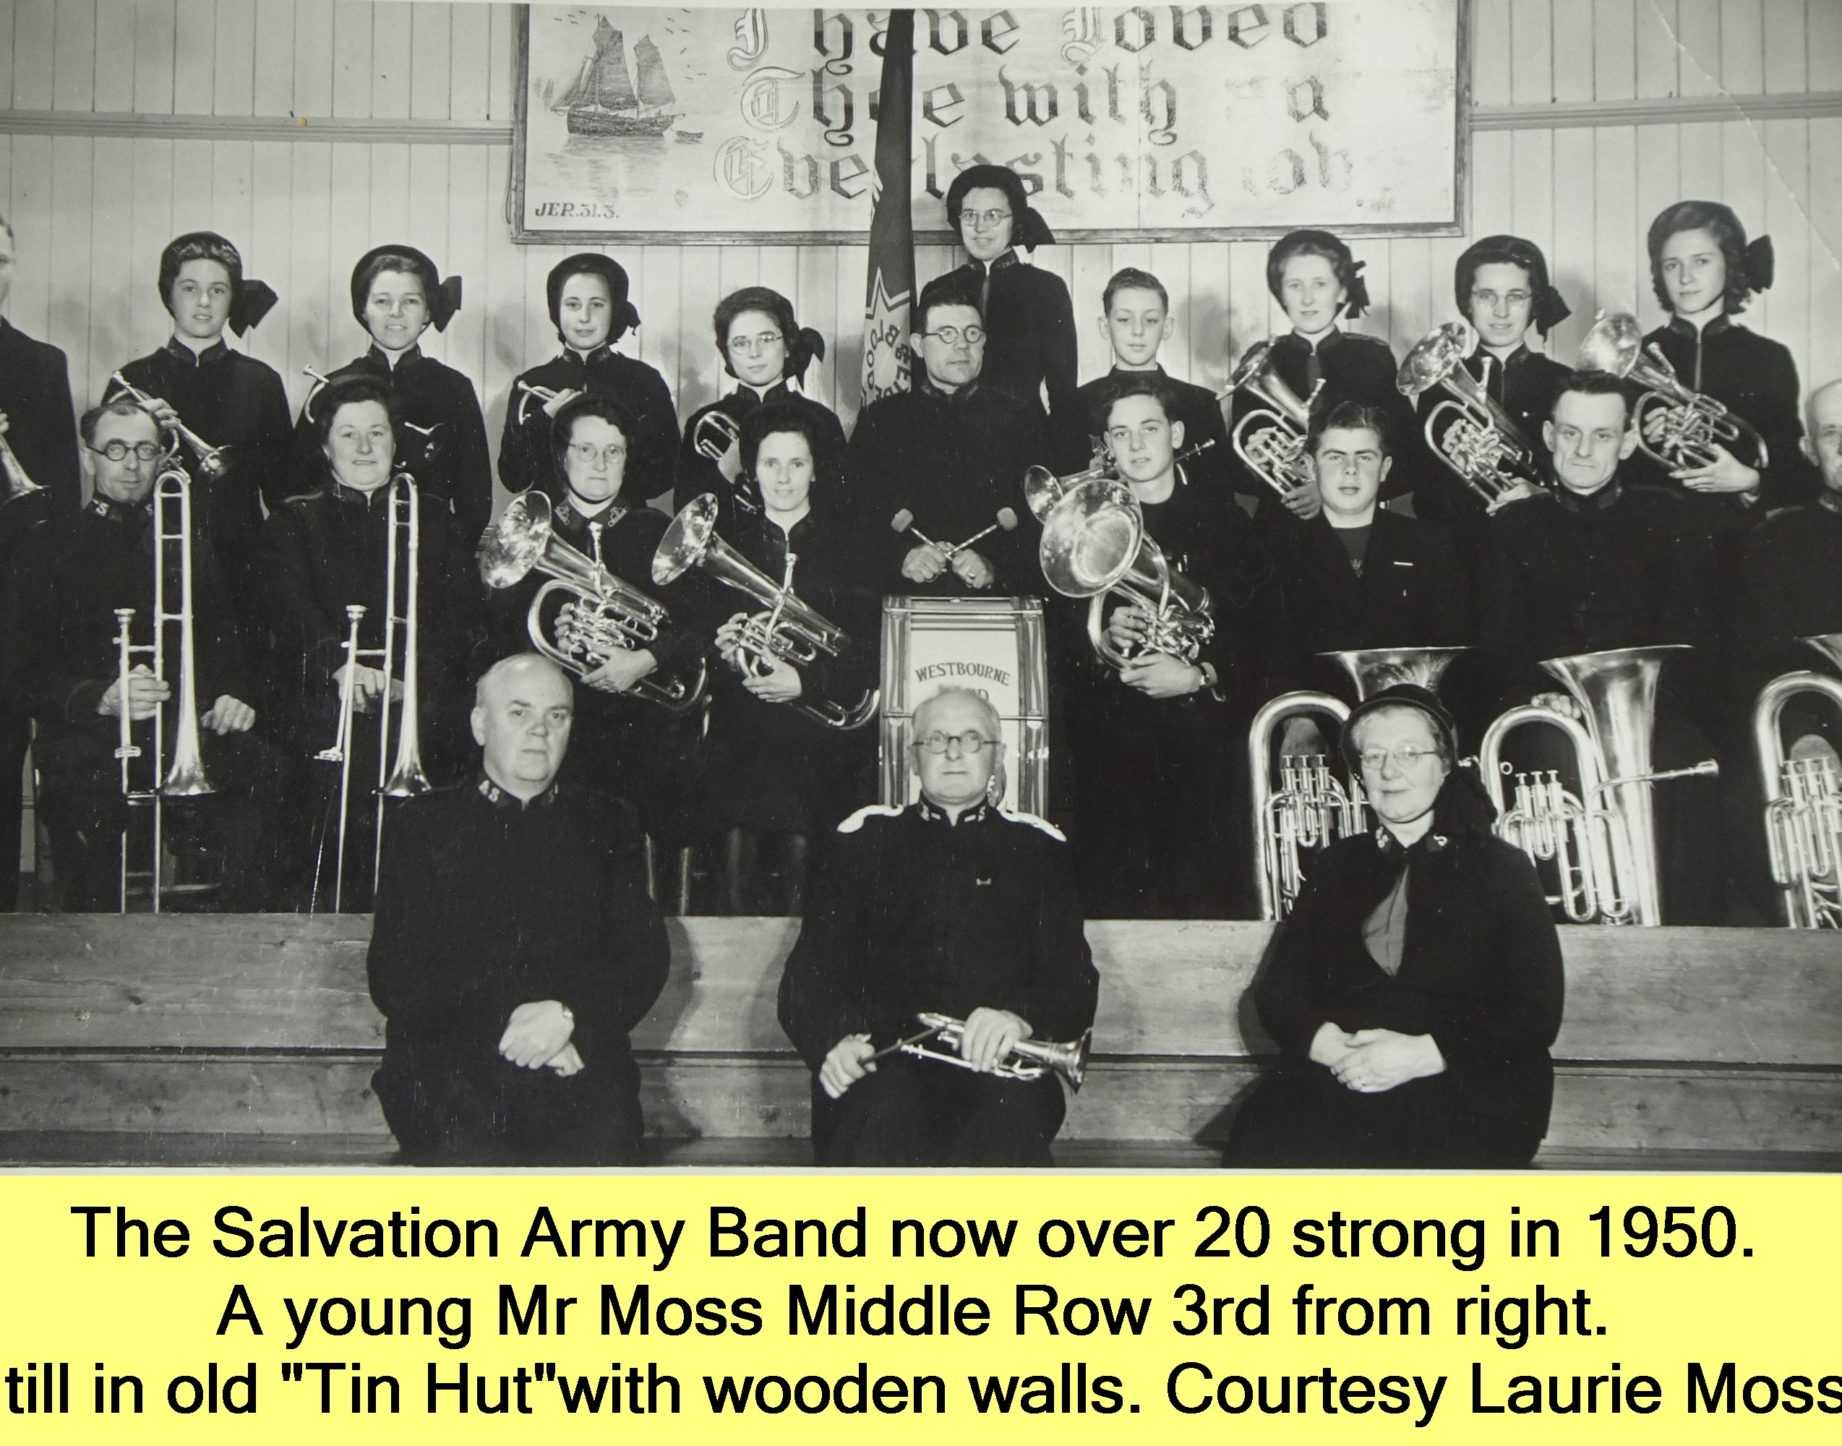 WESTBOURNE HISTORY PHOTO, SALVATION ARMY, BAND, TIN HUT, LAURIE MOSS